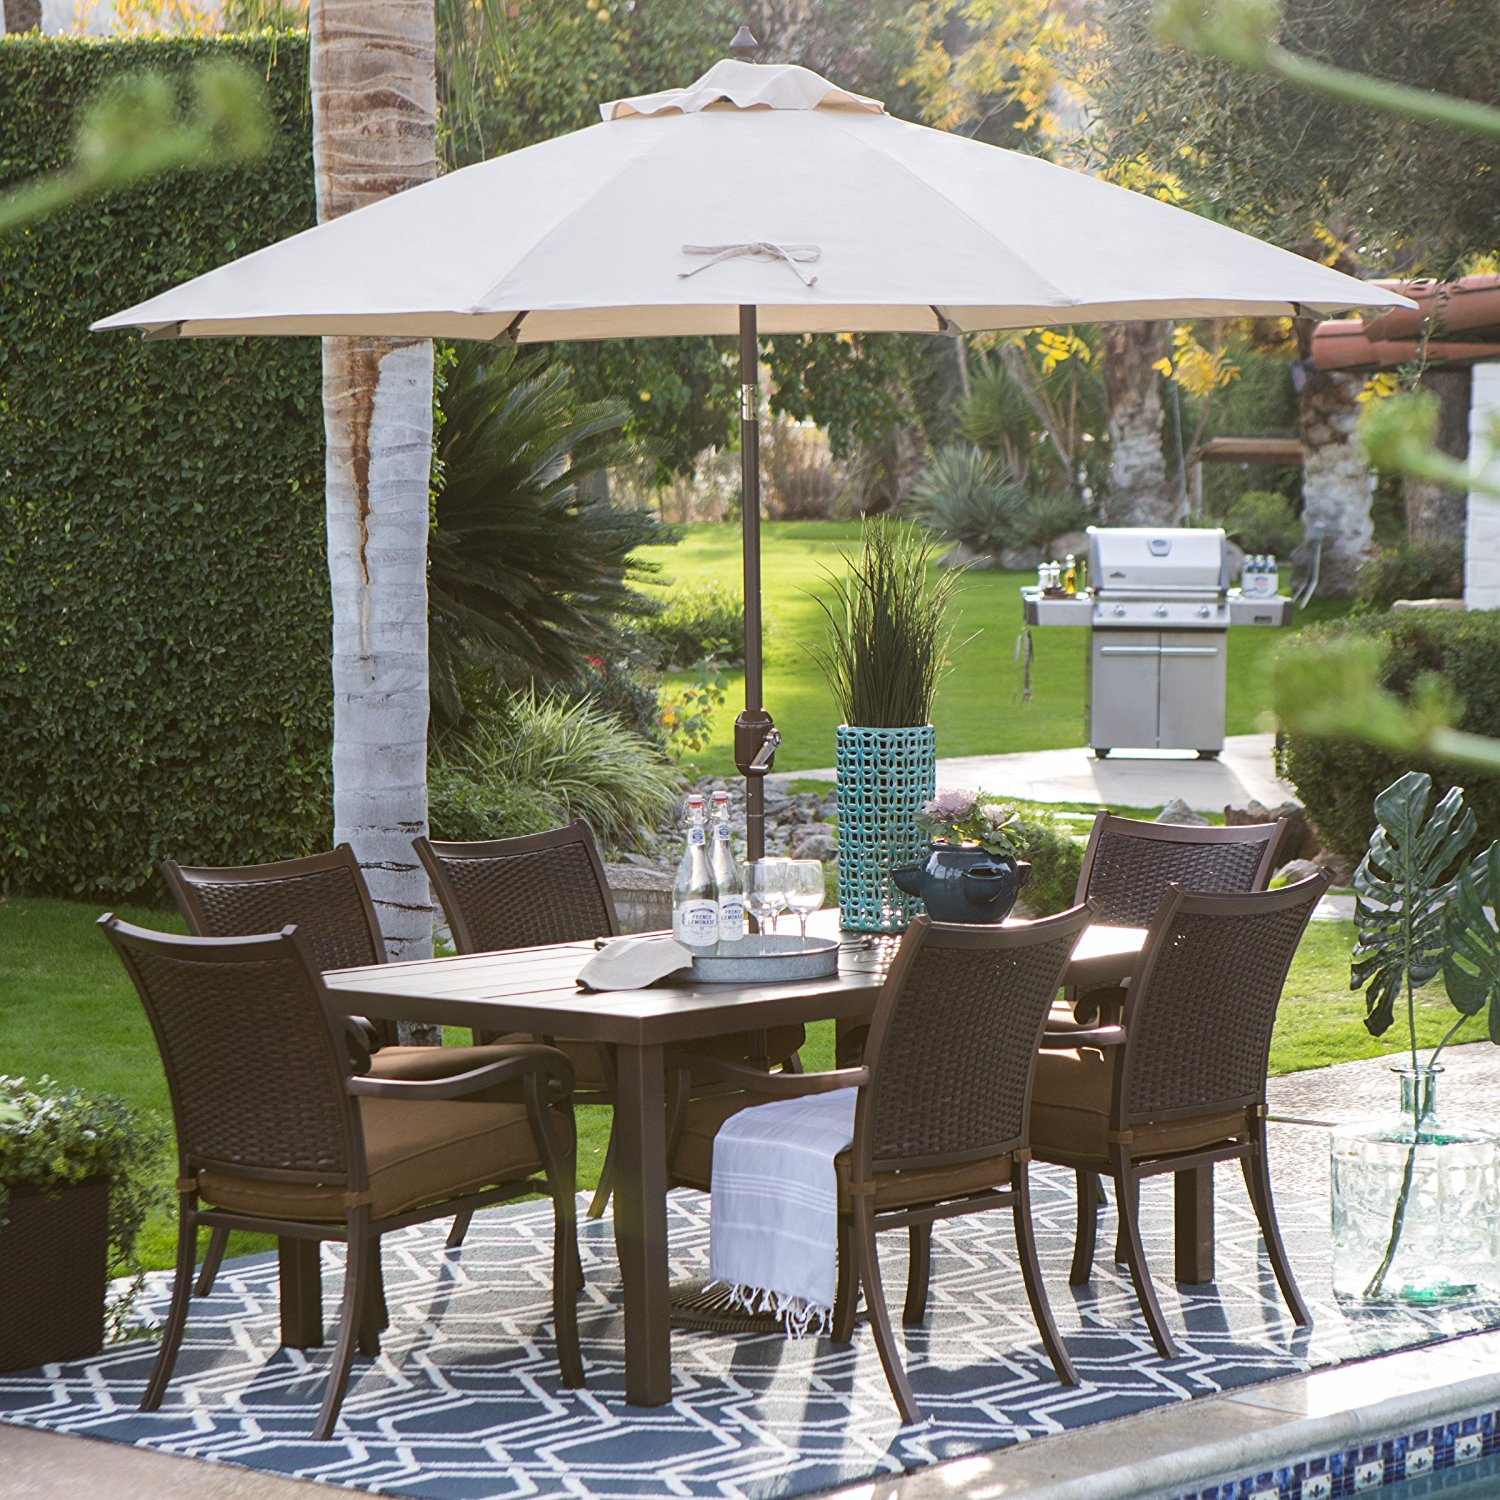 Brown Modern Patio Woven Back Dining Chair & Steel Slatted Table Set | Contemporary Furniture to any Home Outdoor by the Veranda, Porch, Pool or Deck